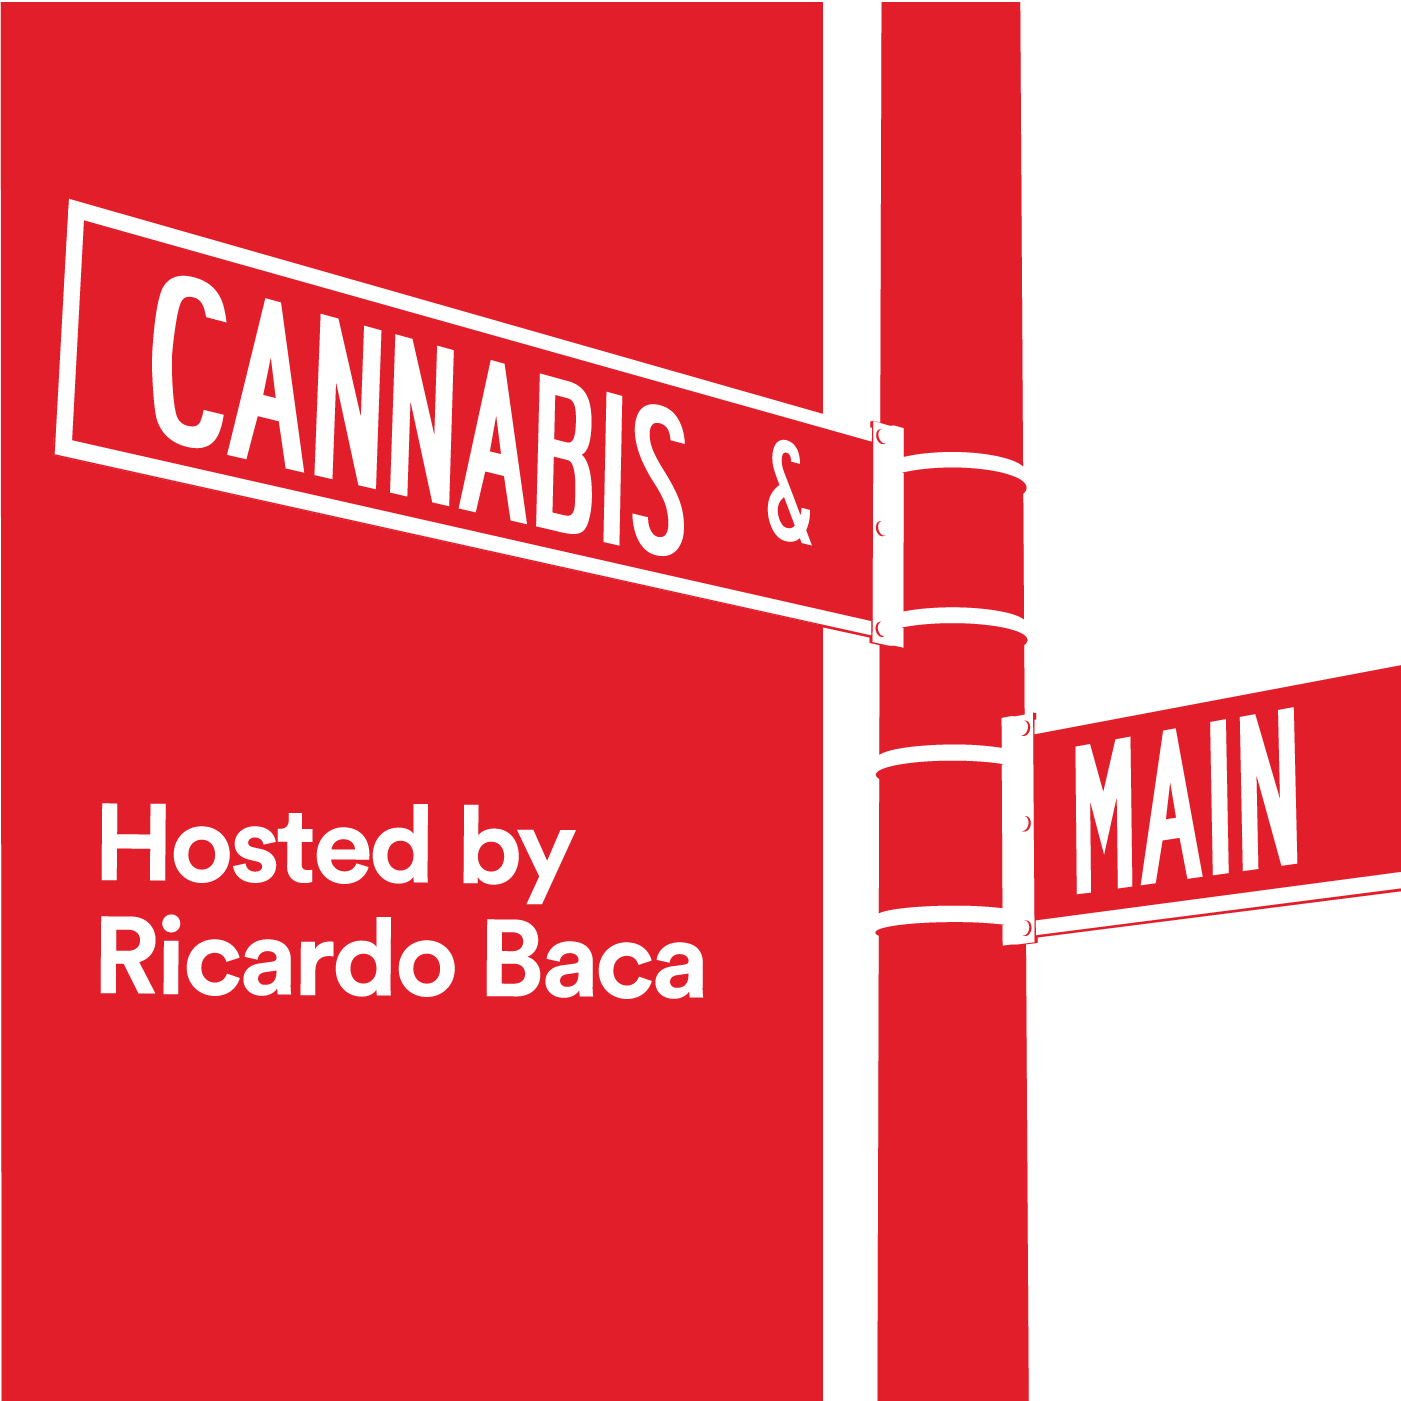 Cannabis & Main: 'Terpenes Are What Drive The Therapeutic Benefits